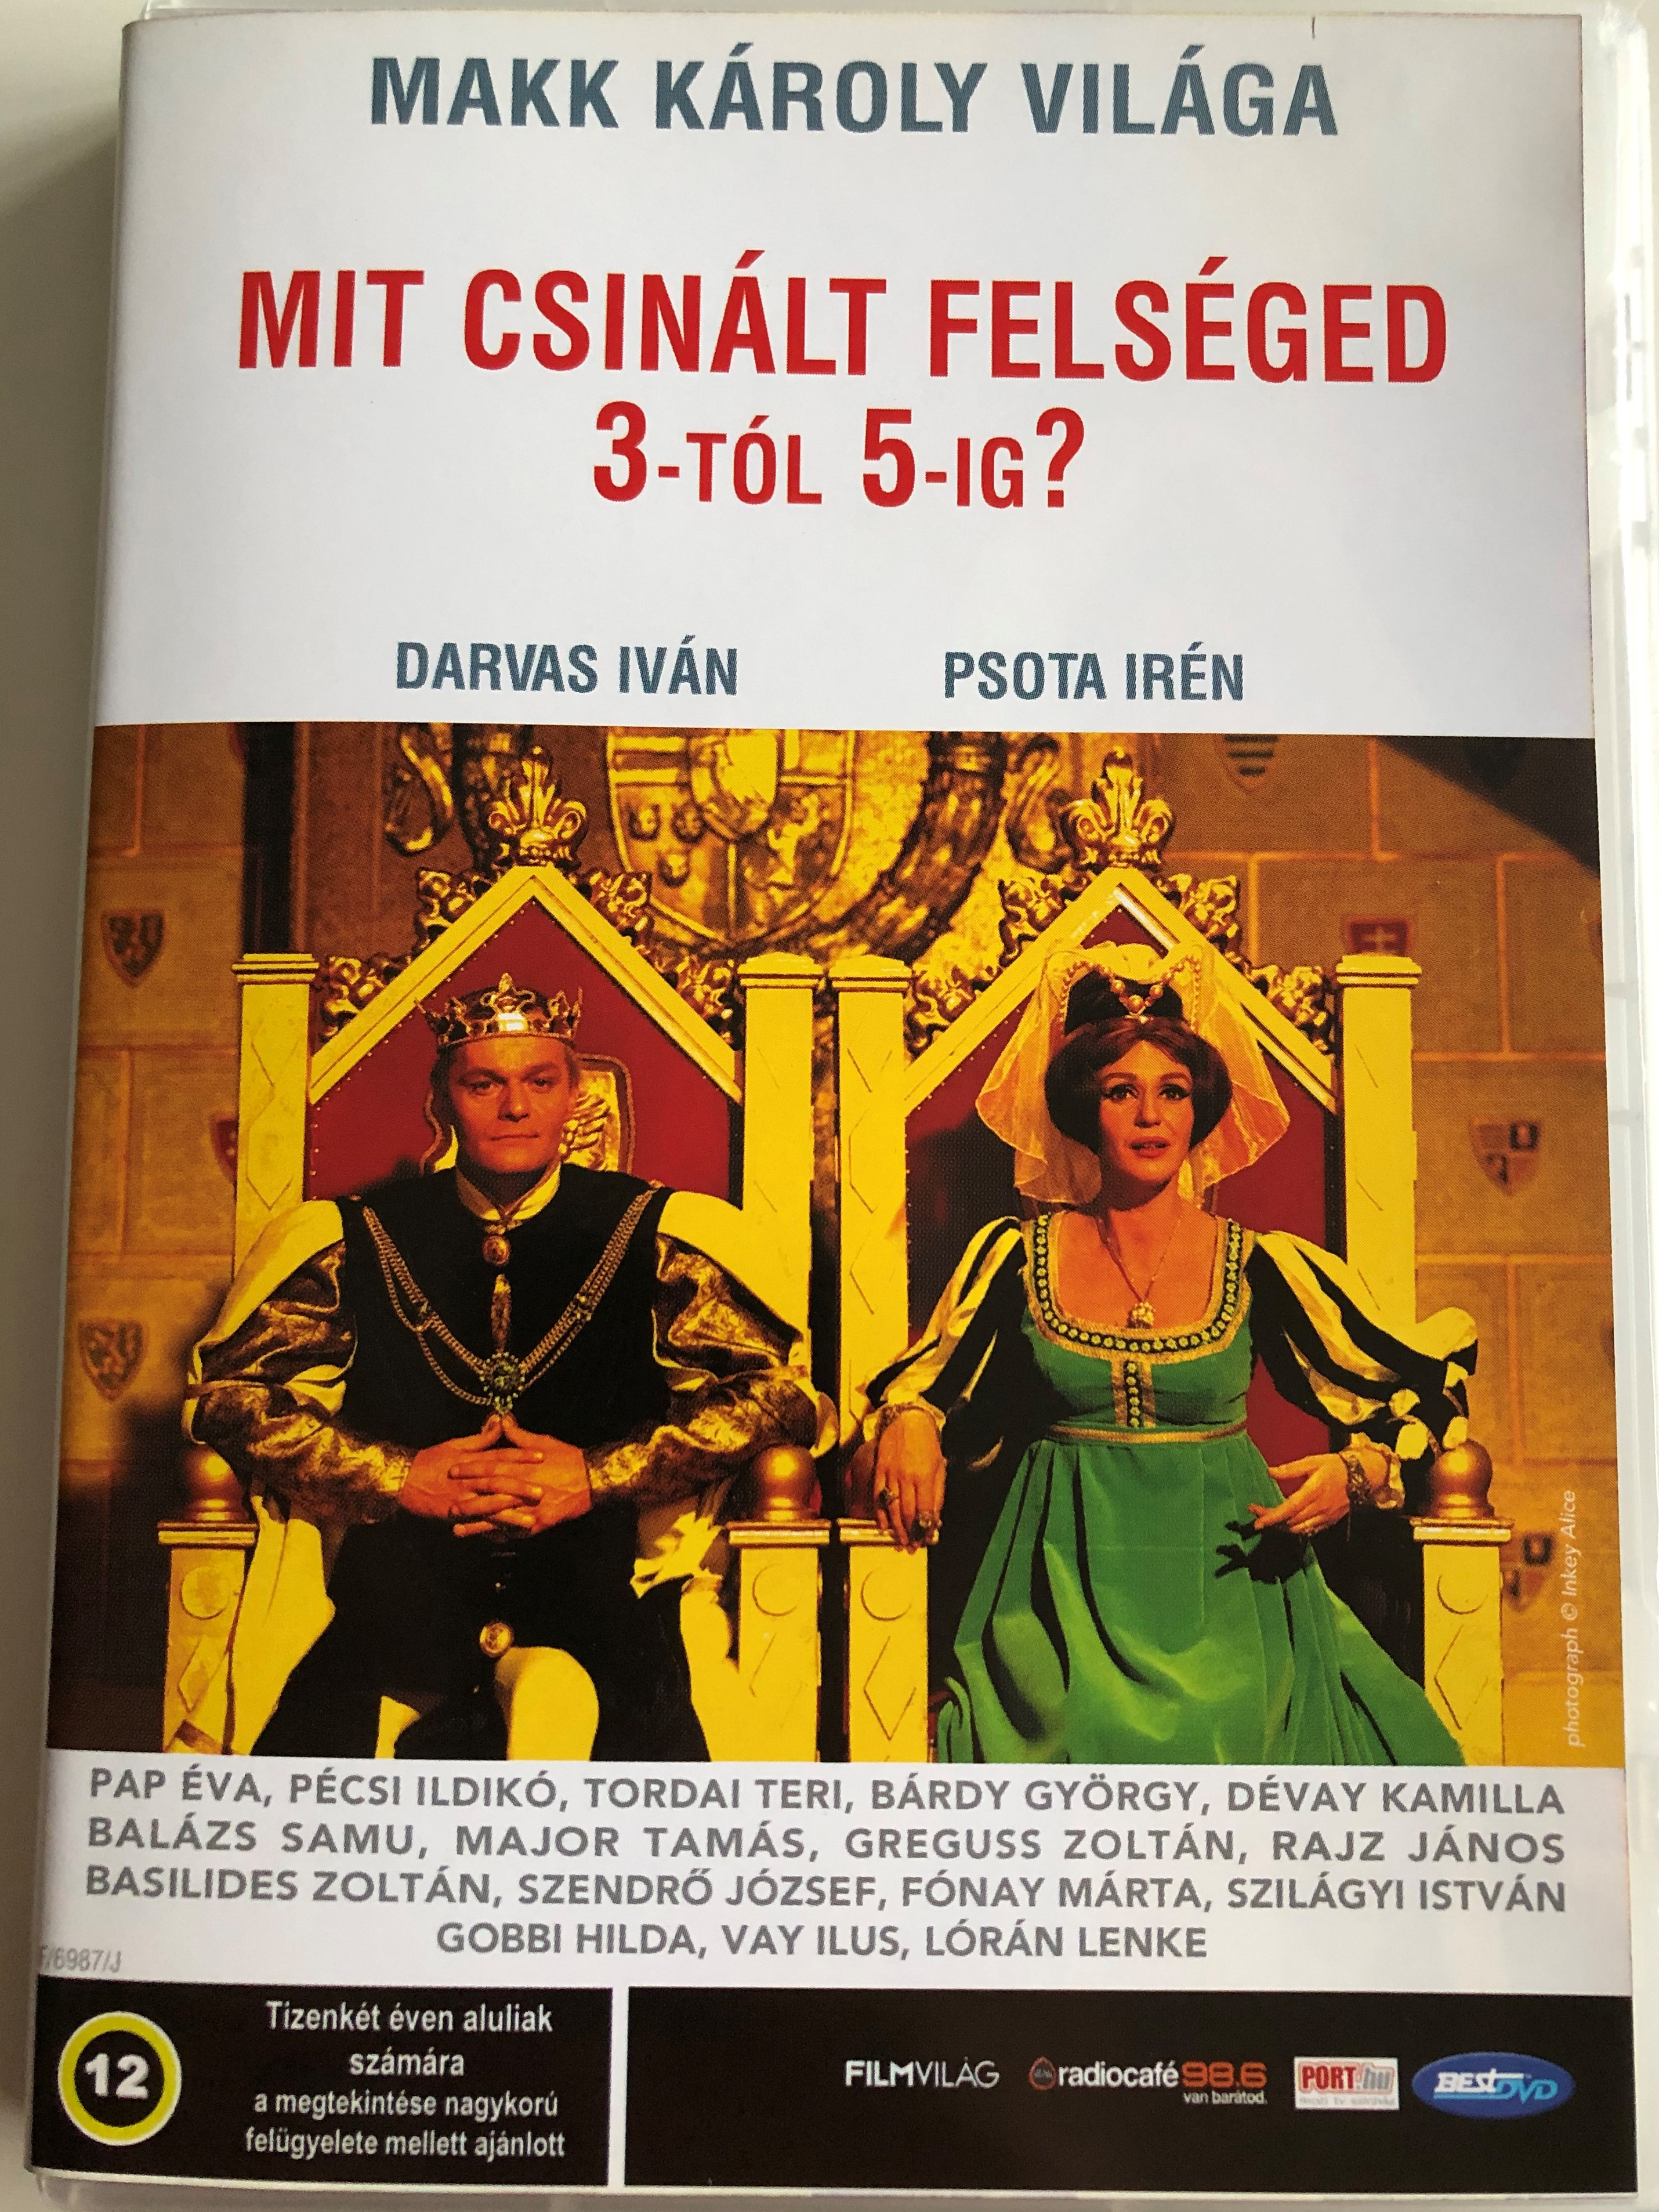 mit-csin-lt-fels-ged-3-t-l-5-ig-dvd-1964-what-did-thine-majesty-do-between-3-and-5-1-.jpg